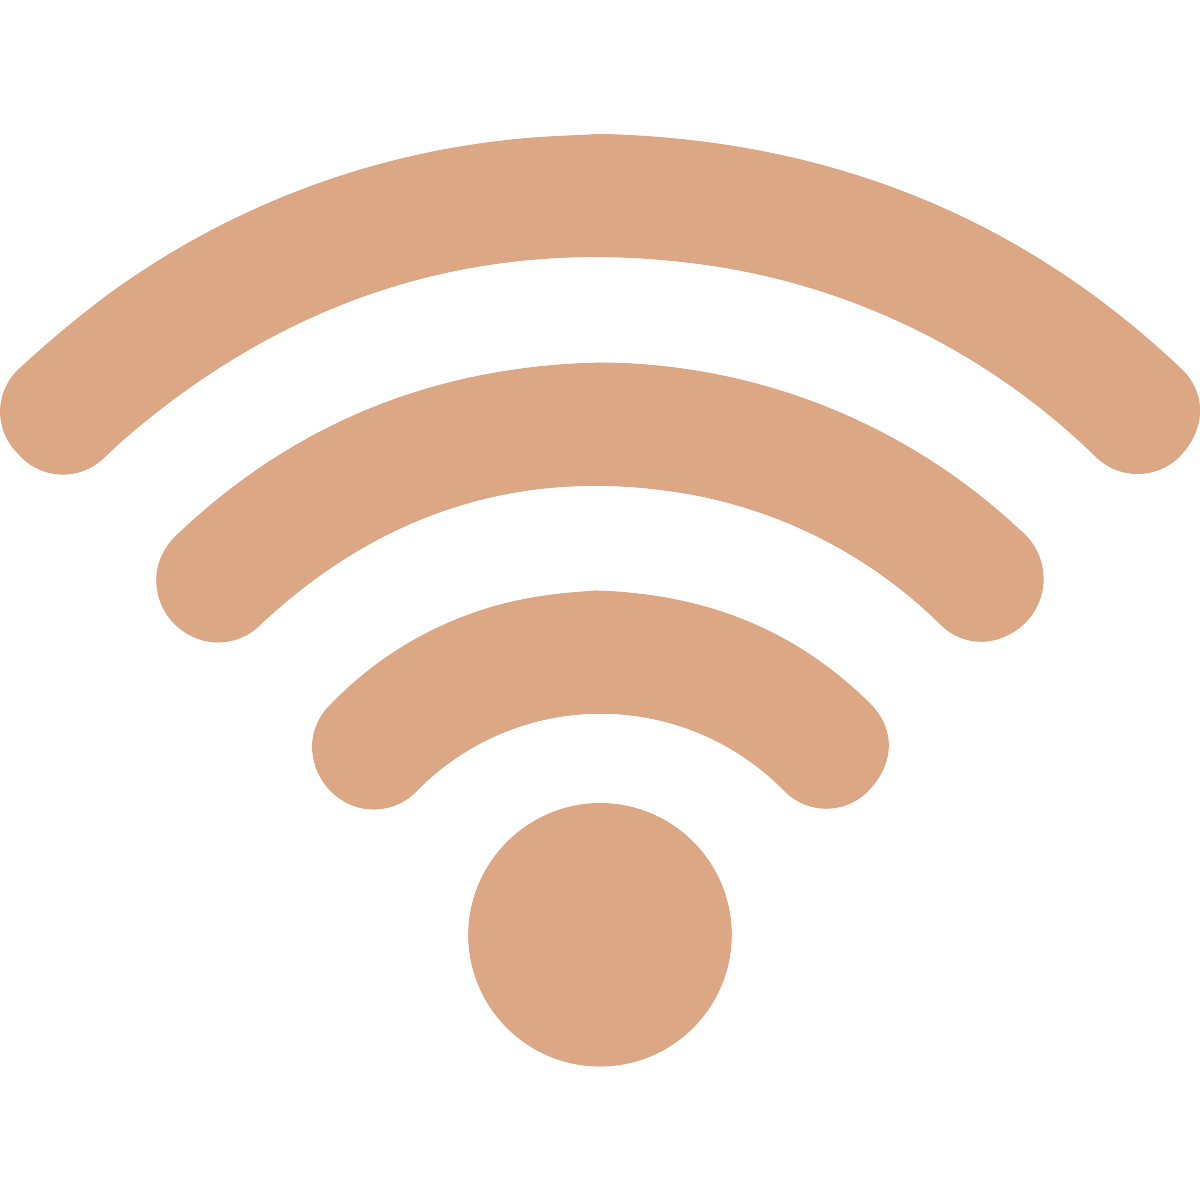 Super-fast Wi-Fi - Stay connected 24/7 with 100mb wifi.